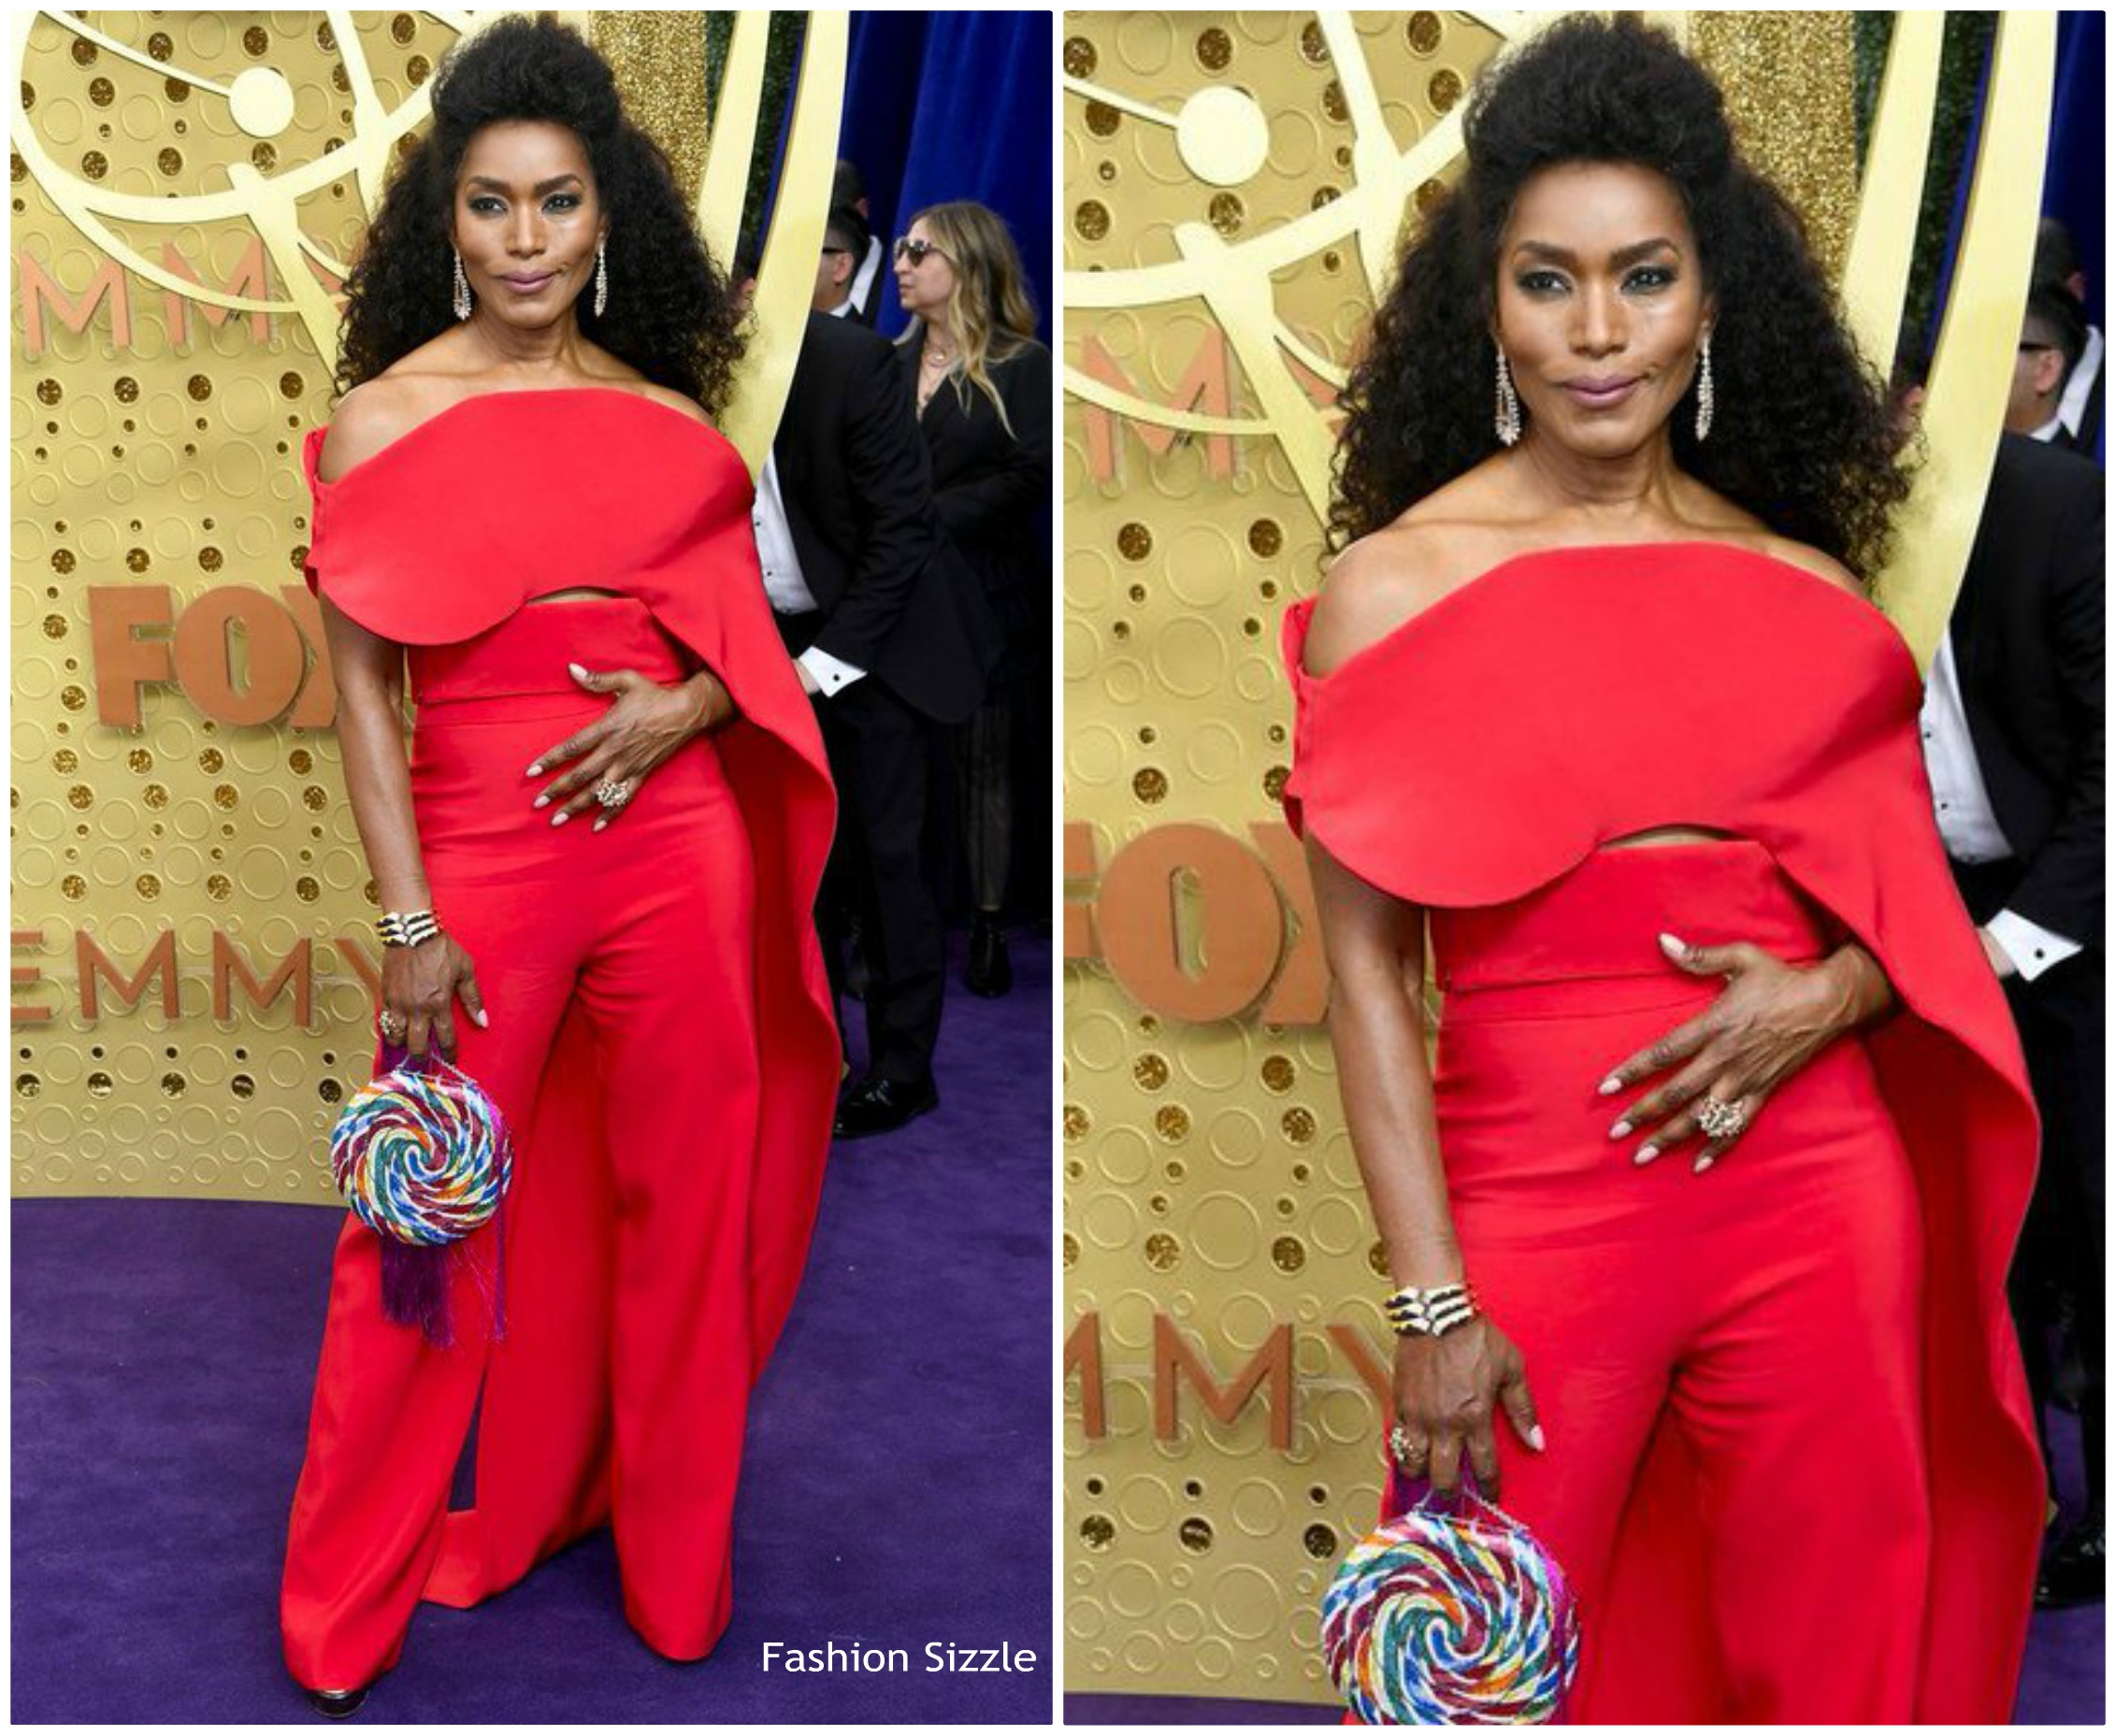 angela-bassett-in-antonio-grimaldi-couture-2019-emmy-awards